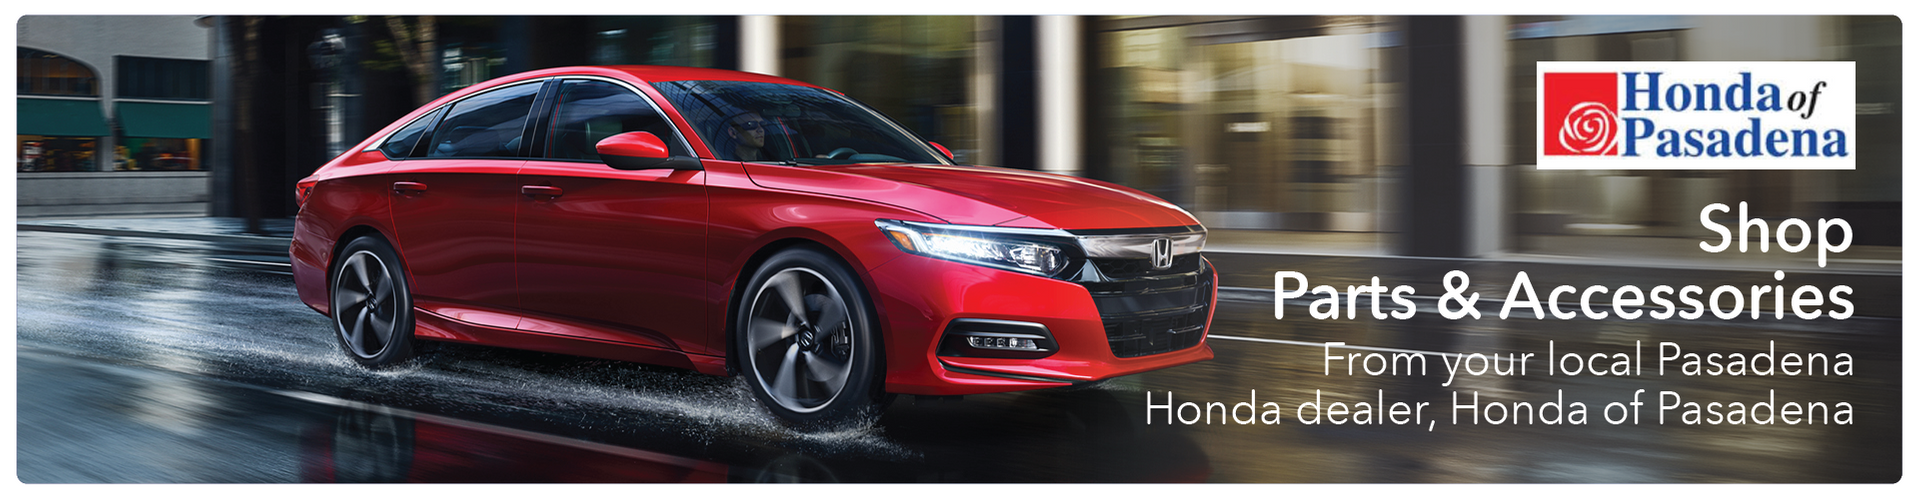 Shop Honda of Pasadena Parts and Accessories